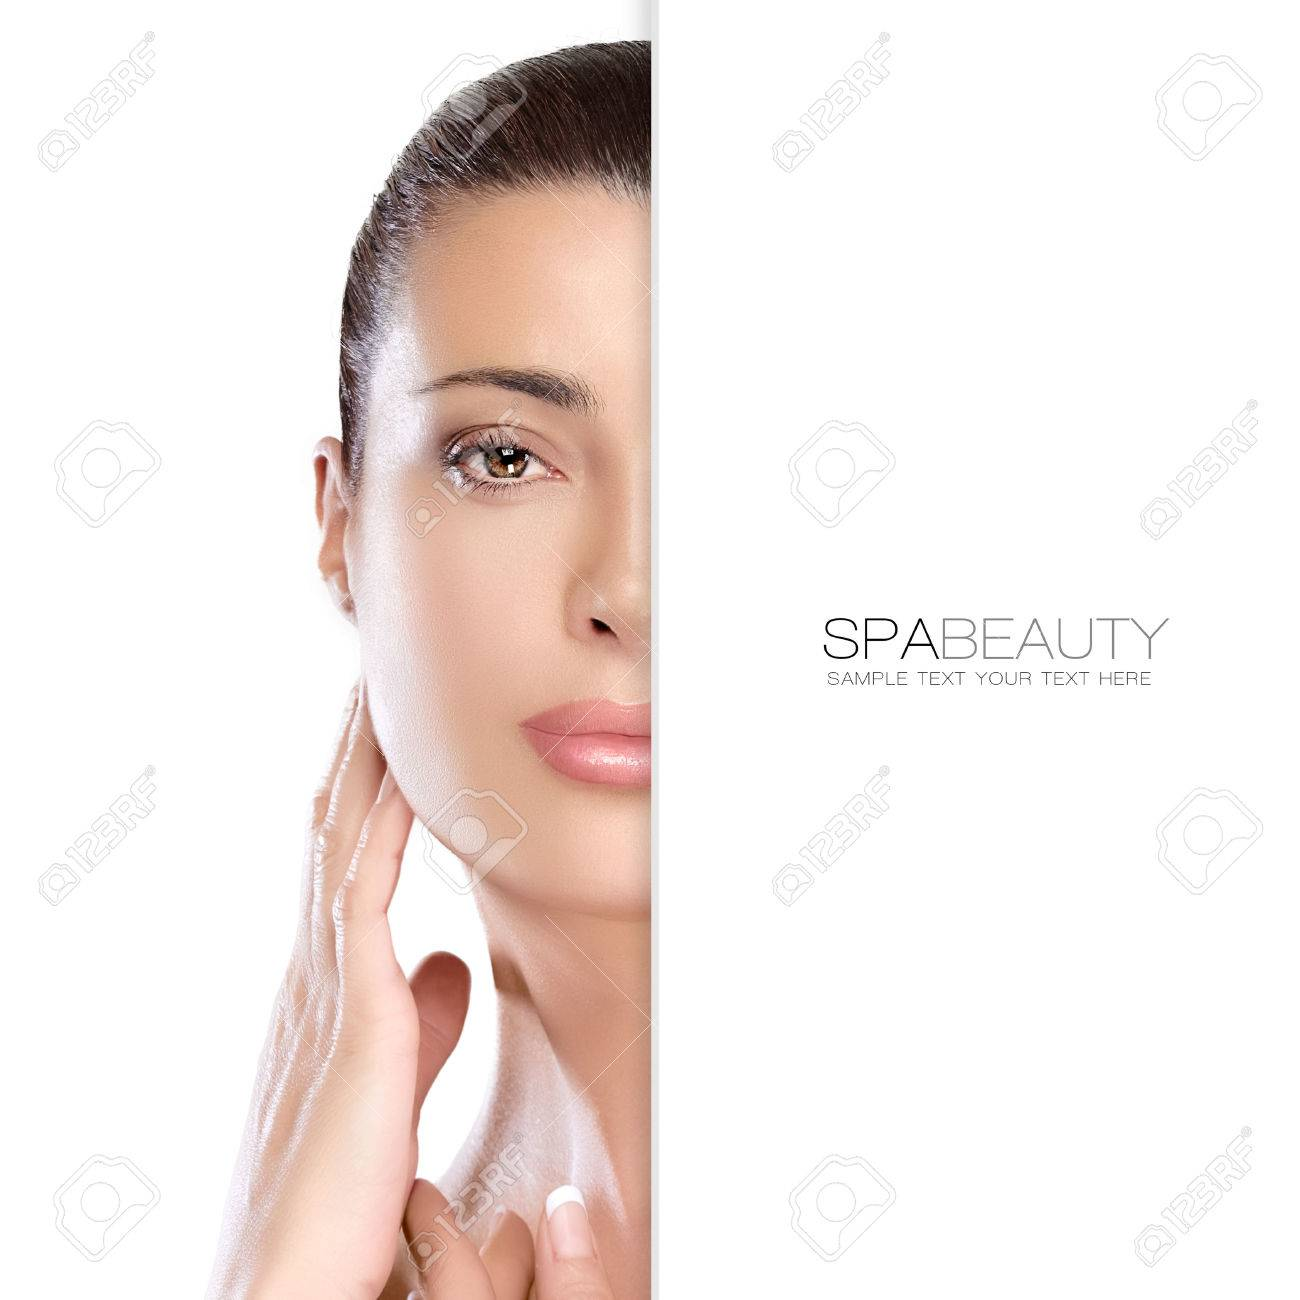 Beauty portrait of a gorgeous natural young woman with perfect healthy skin and a serene expression, suitable for skincare and spa concepts, isolated on white with copyspace alongside. Template design with sample text - 53978397